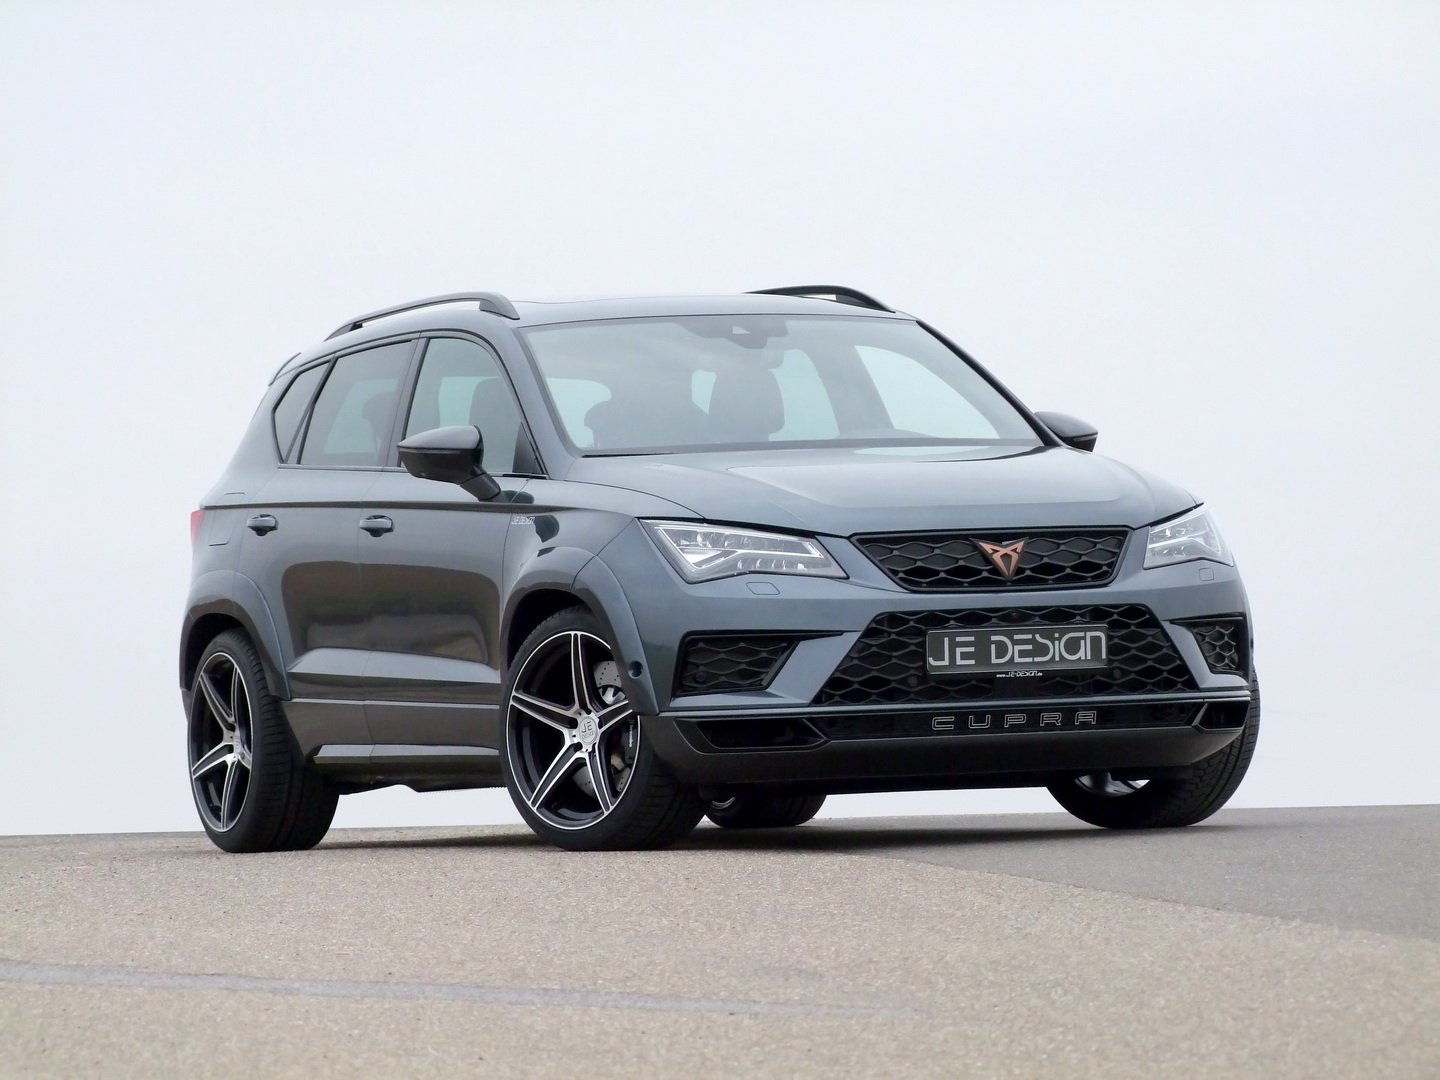 The folks over at Je Design have released an upgrade package for the Cupra Ateca mini-SUV